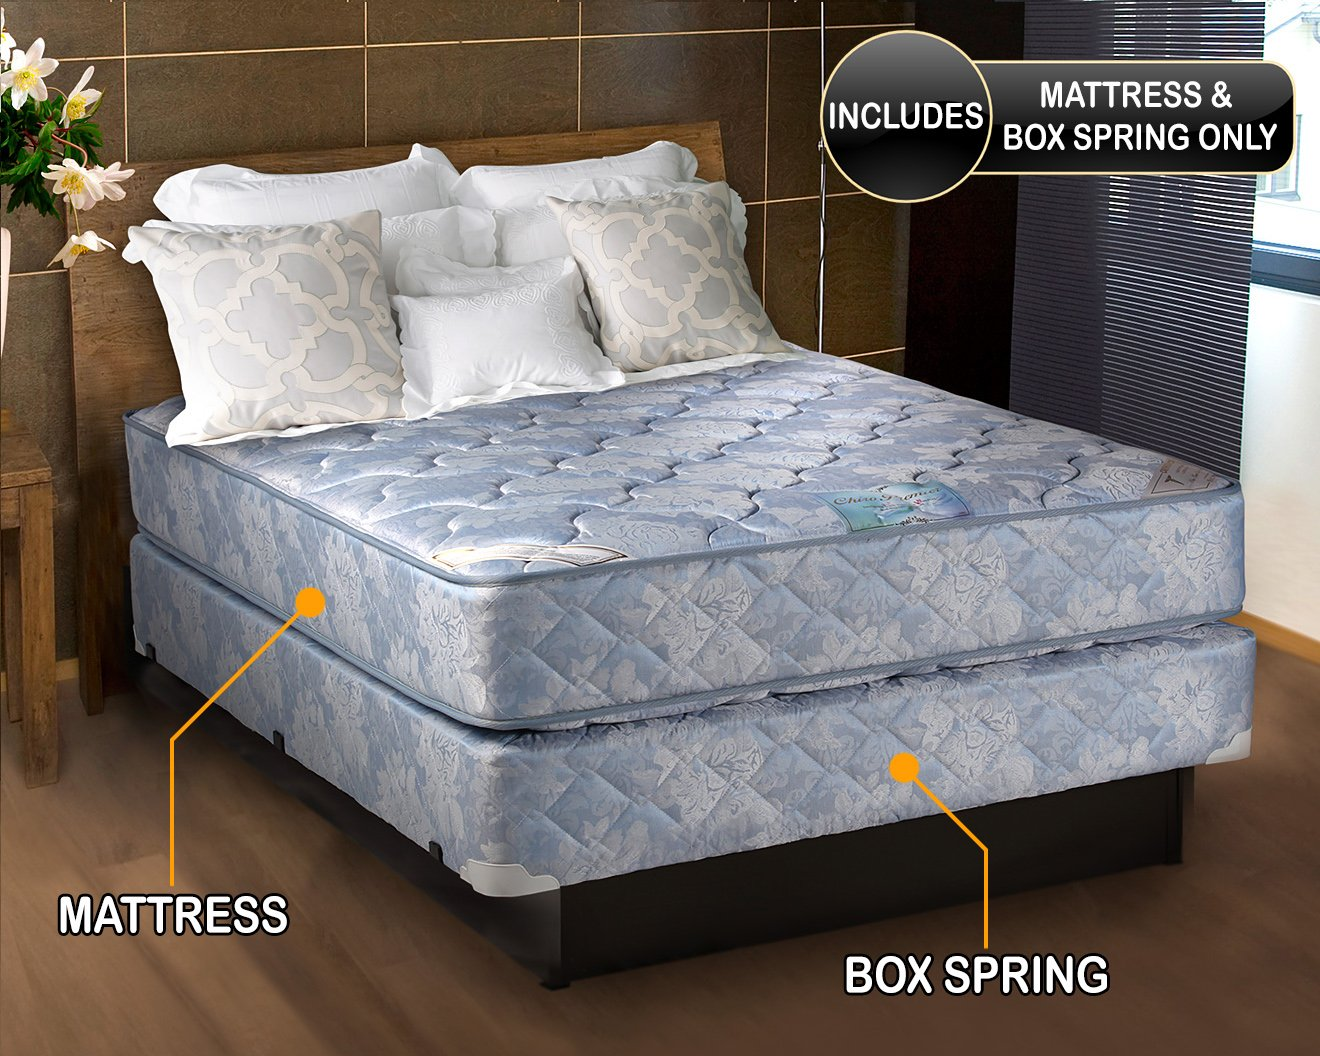 Chiro Premier Orthopedic (Blue Color) California King Size Mattress and Box Spring Set - Fully Assembled, Good for your back, Superior Quality, Long Lasting and 2 Sided - By Dream Solutions USA by Dream Solutions USA